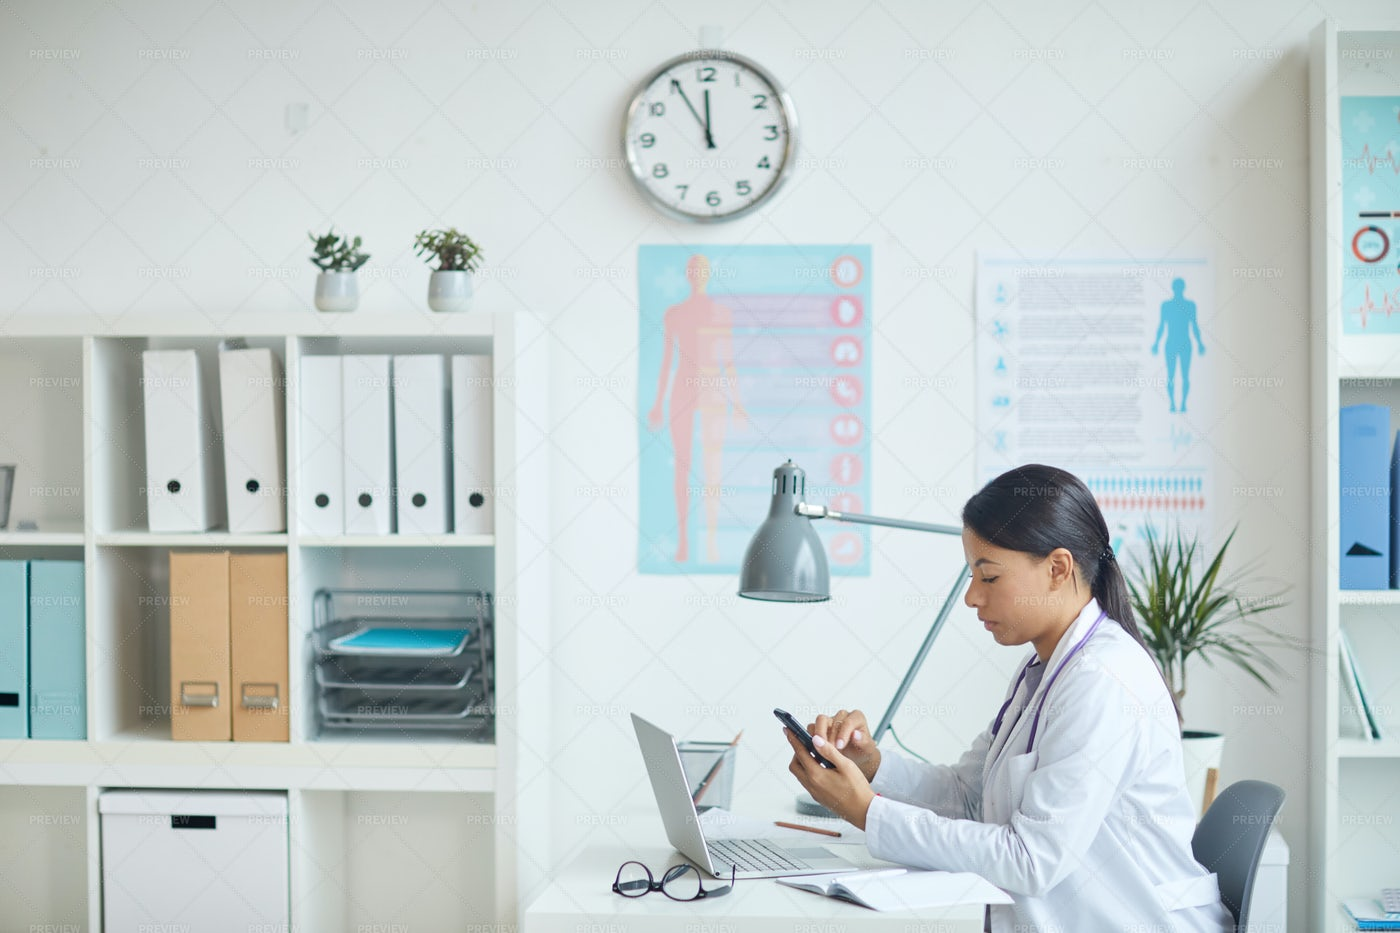 Pediatrician Using Phone In Her Office: Stock Photos